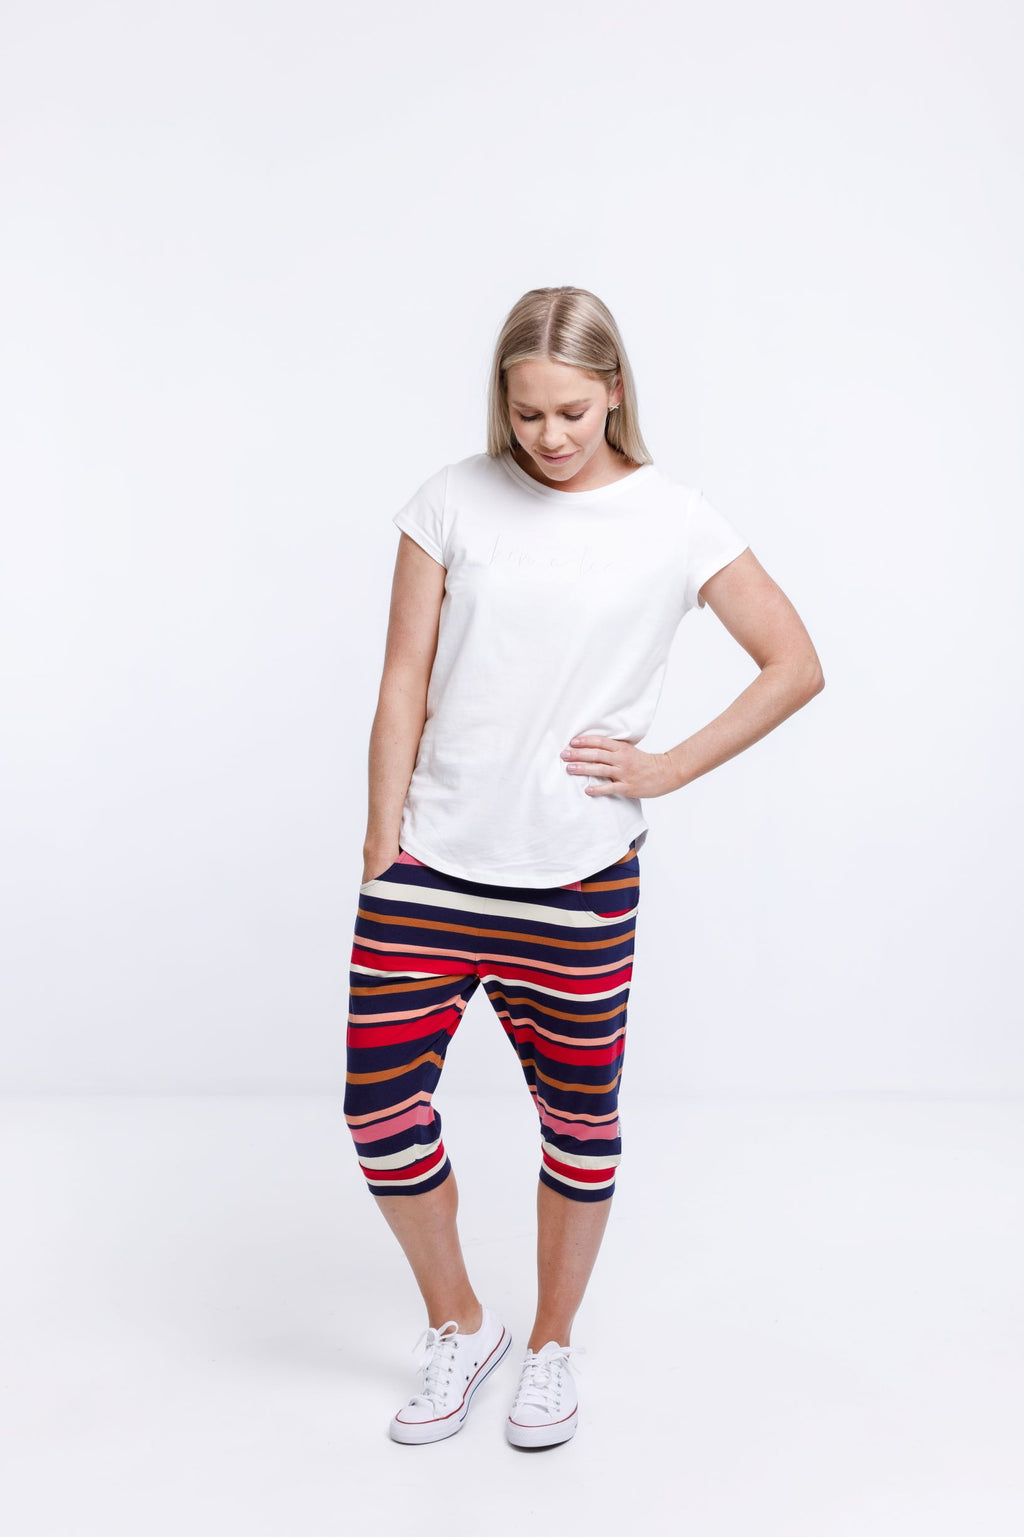 3/4 APARTMENT PANTS - Autumn Stripe Print